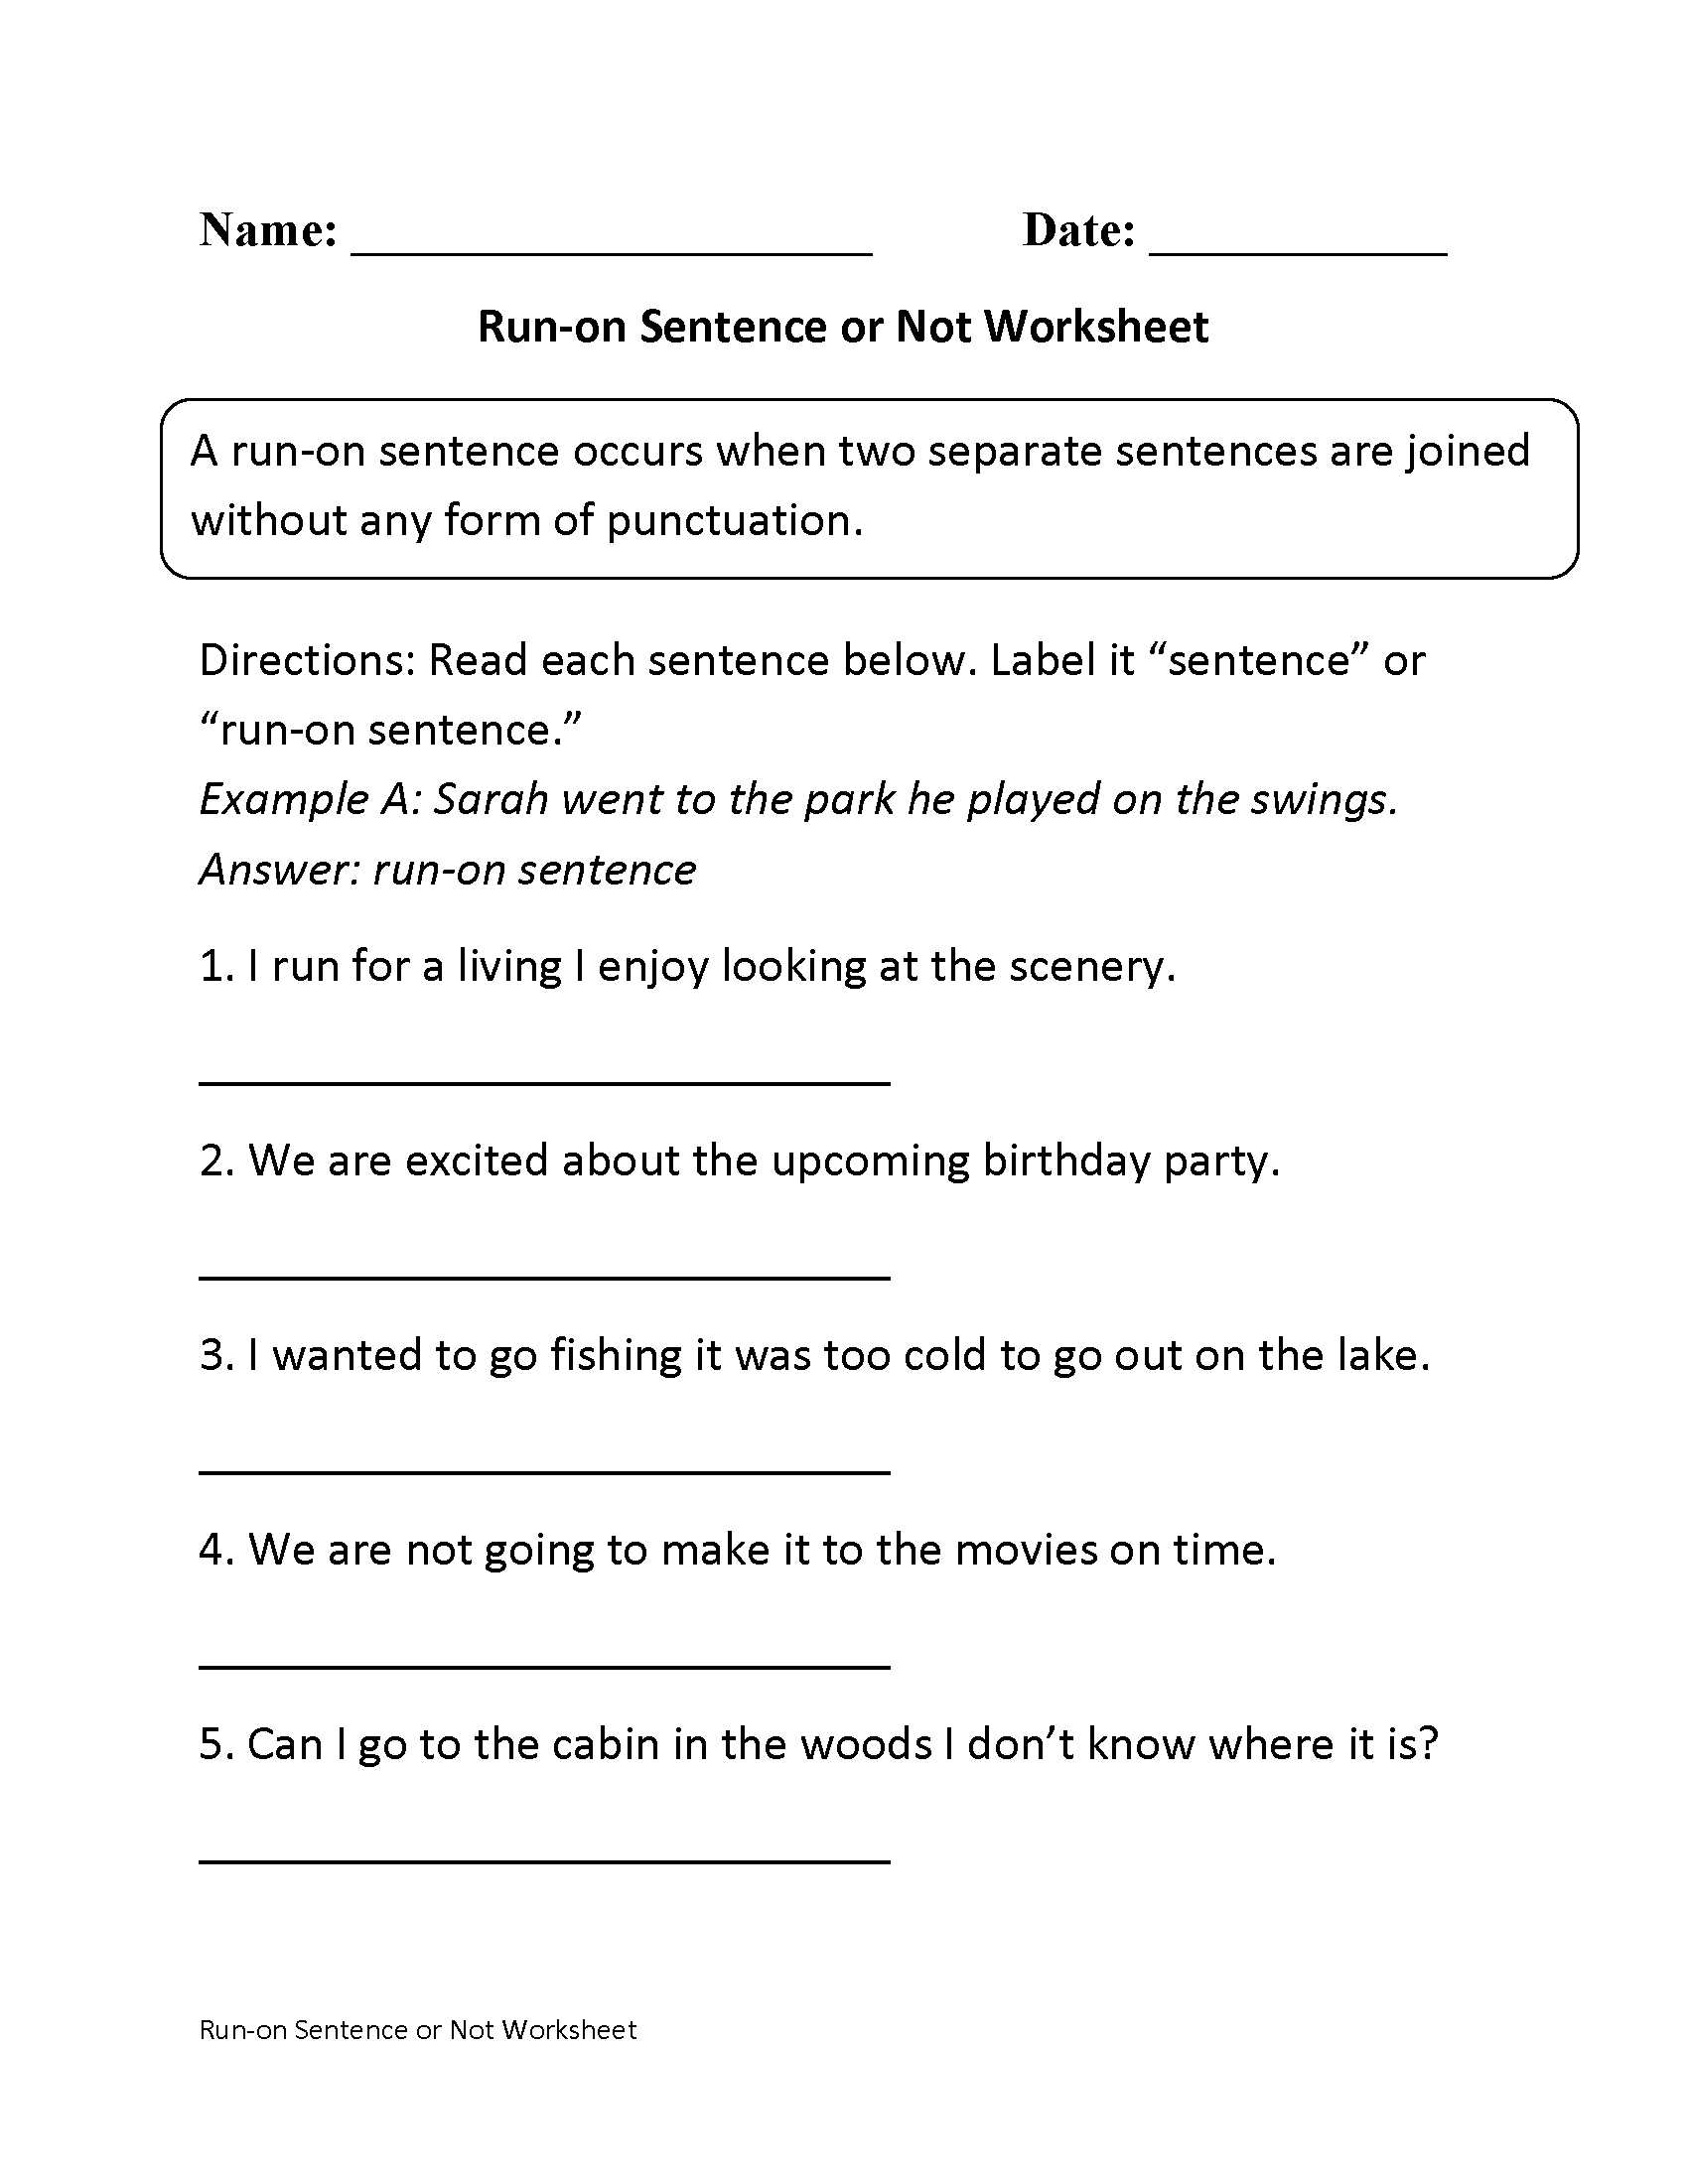 Worksheets Sentence Fragment Worksheet run on sentences or not worksheet englishlanguage artsreading this directs the student to read each sentence and tell whether it is a not